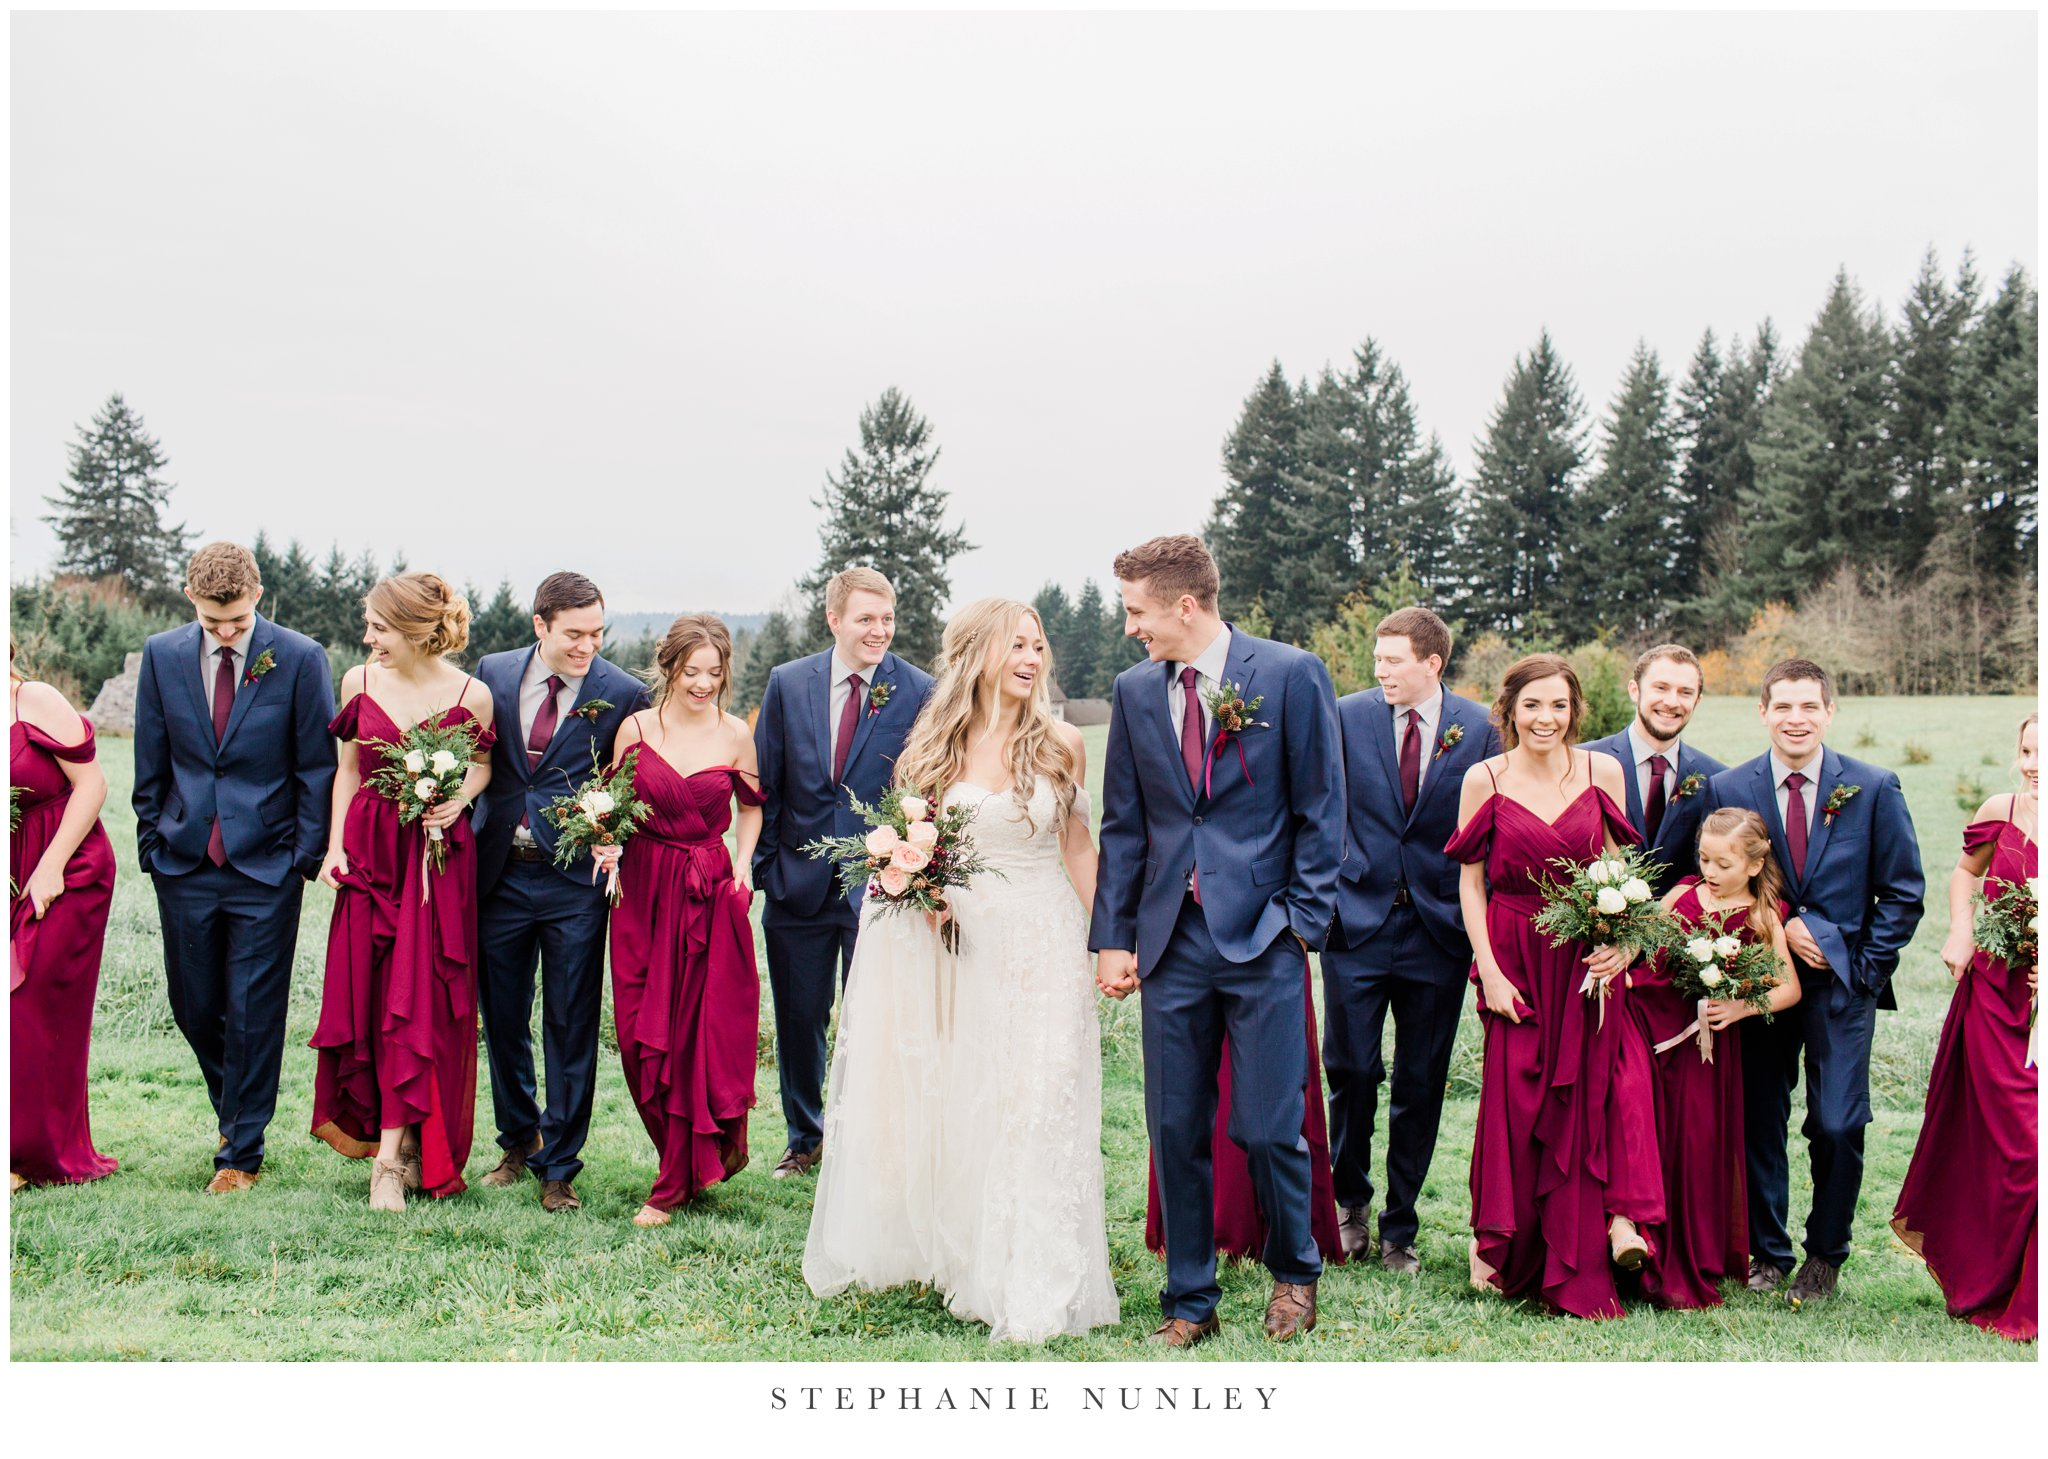 vancouver-washington-church-wedding-photos-61.jpg